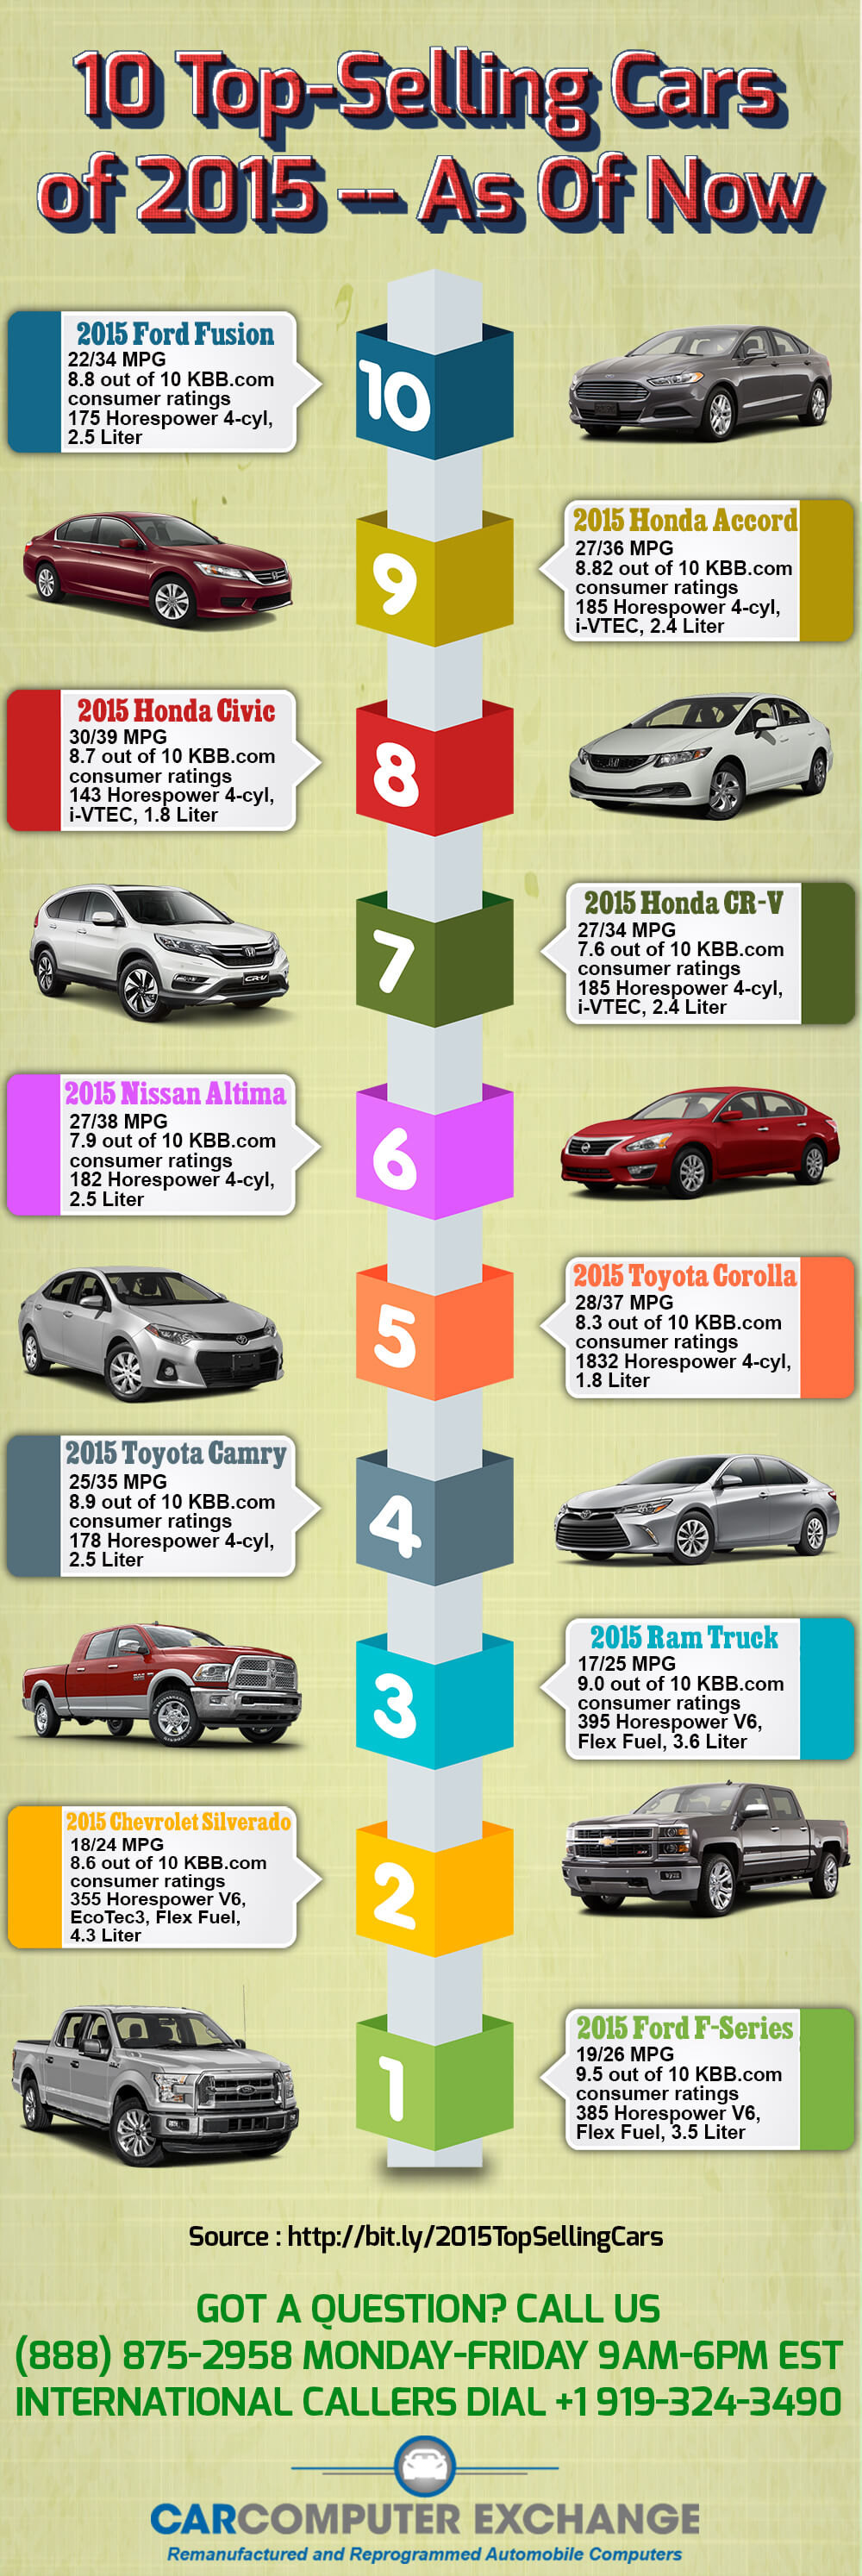 10 Top-Selling Cars of 2015 – As of Now